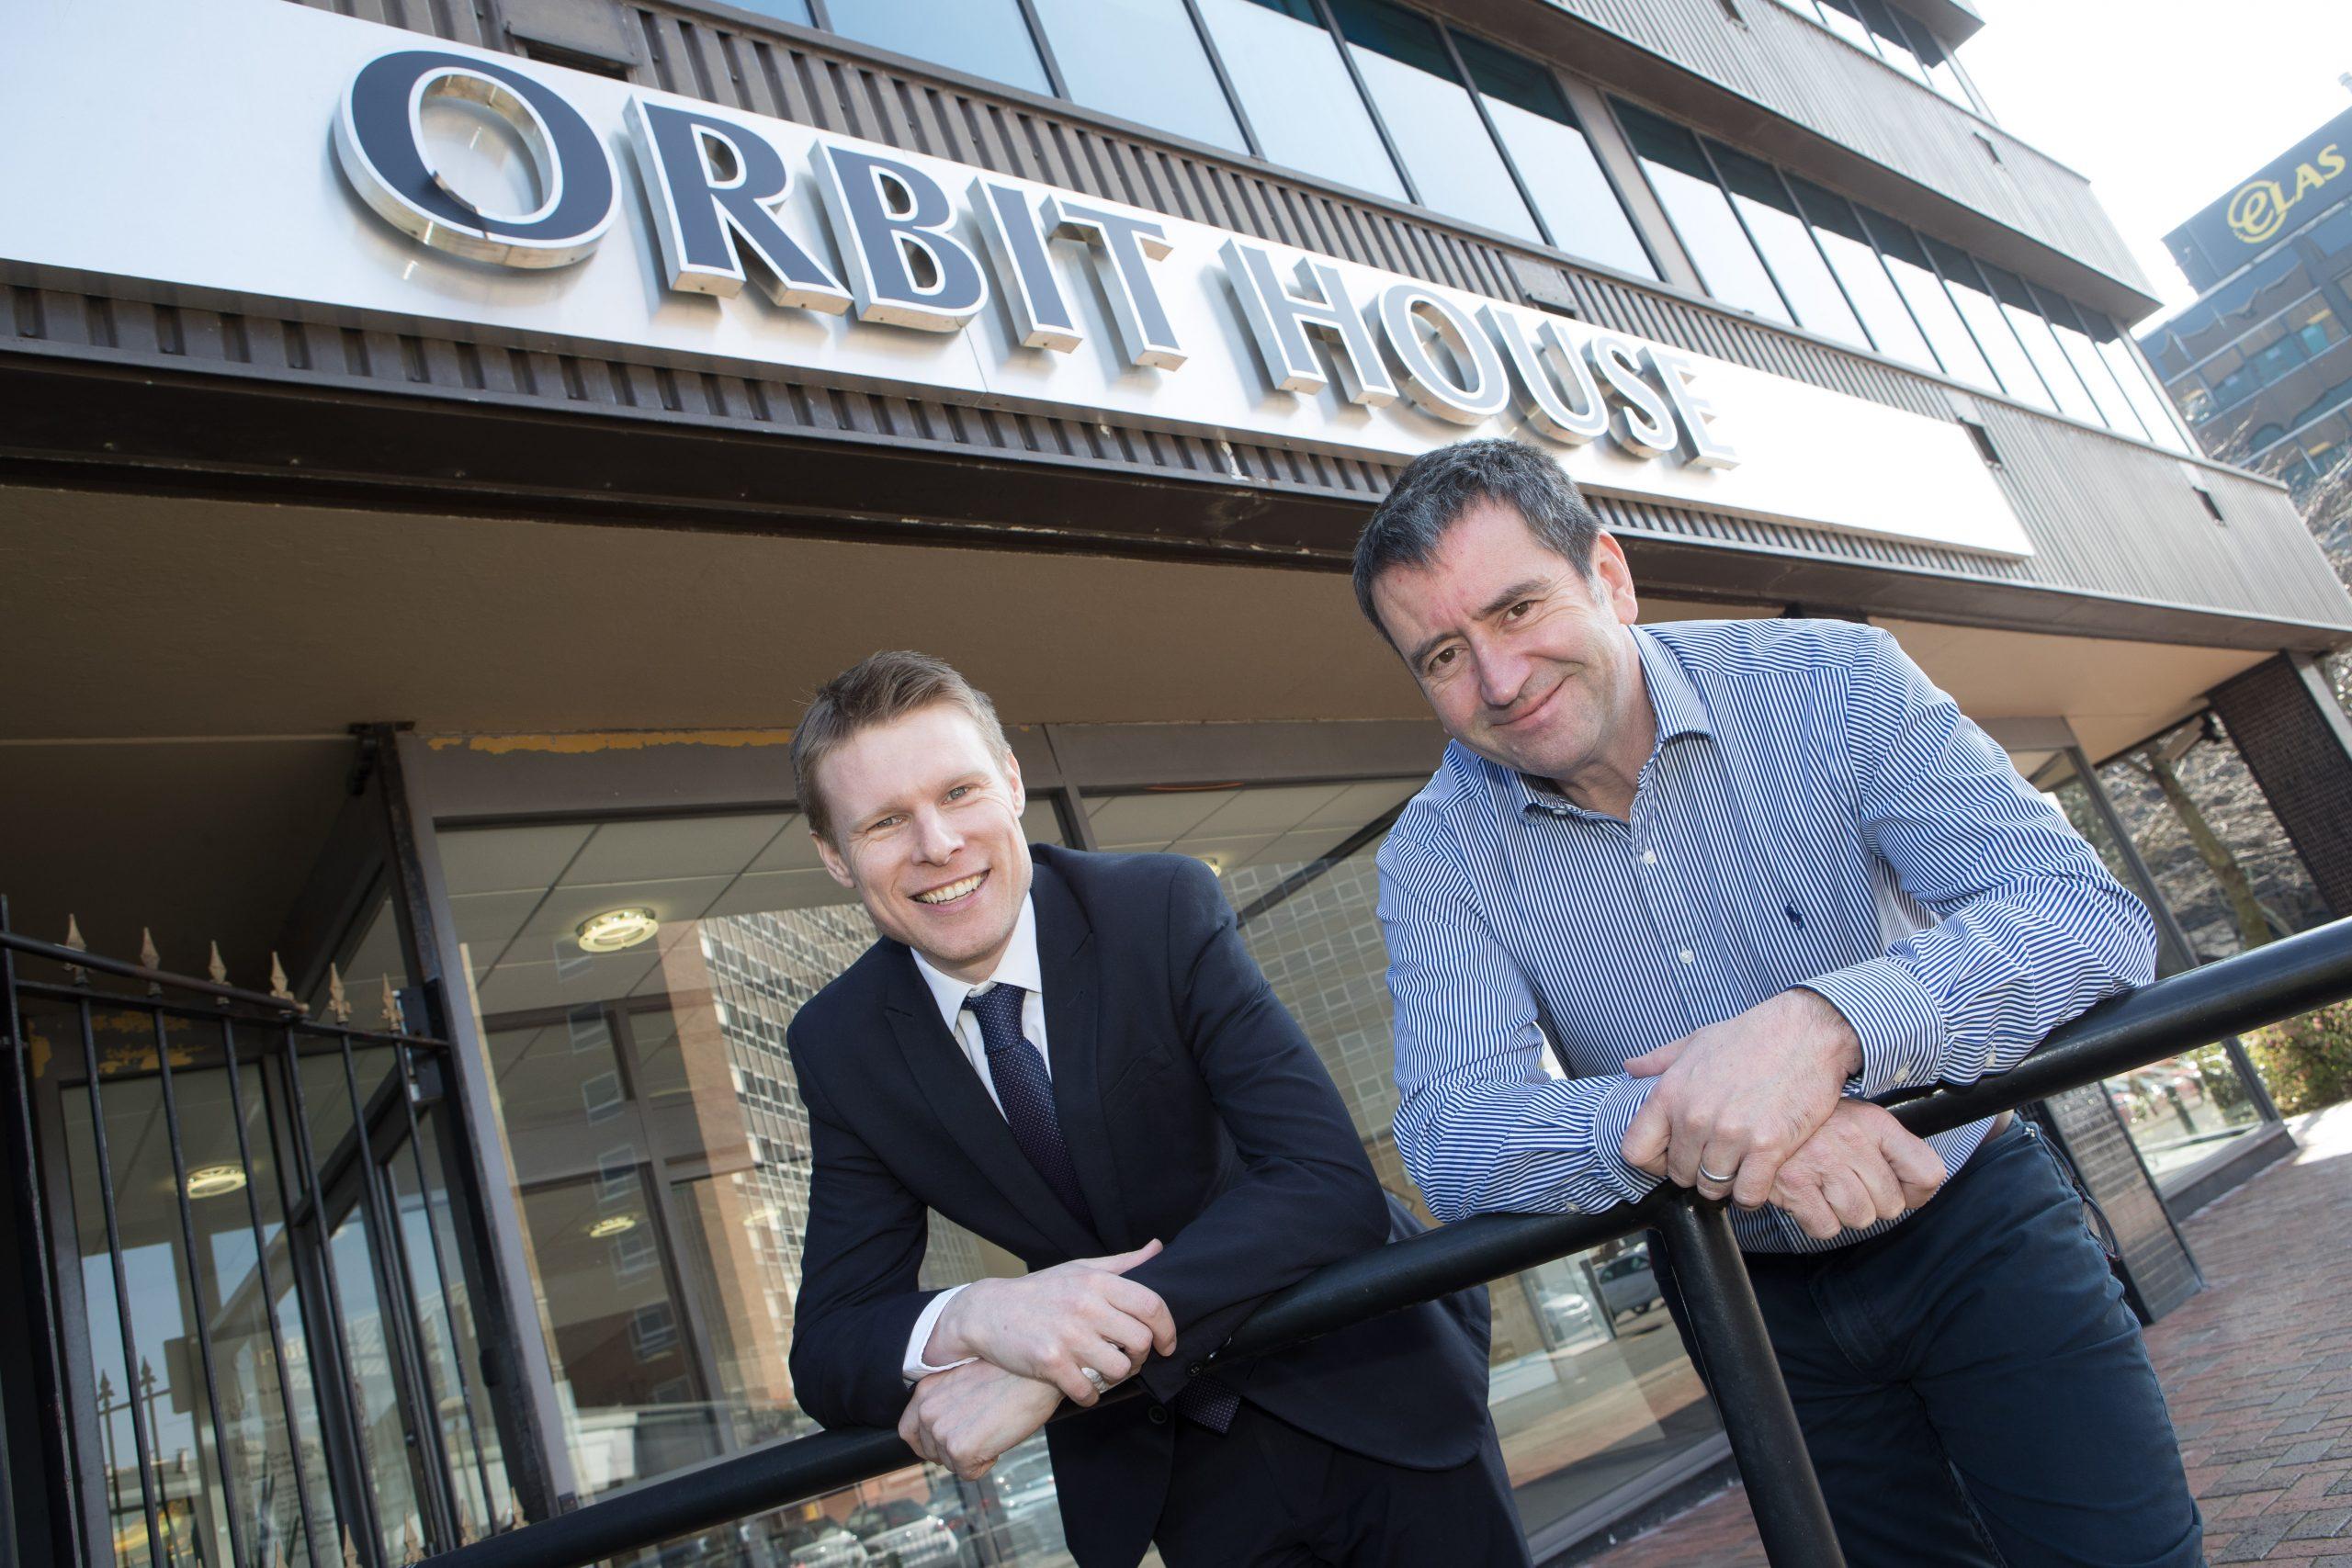 Dean Richards, Leasing Director at Orbit Developments and John Critchley, Director at The Fourth Utility